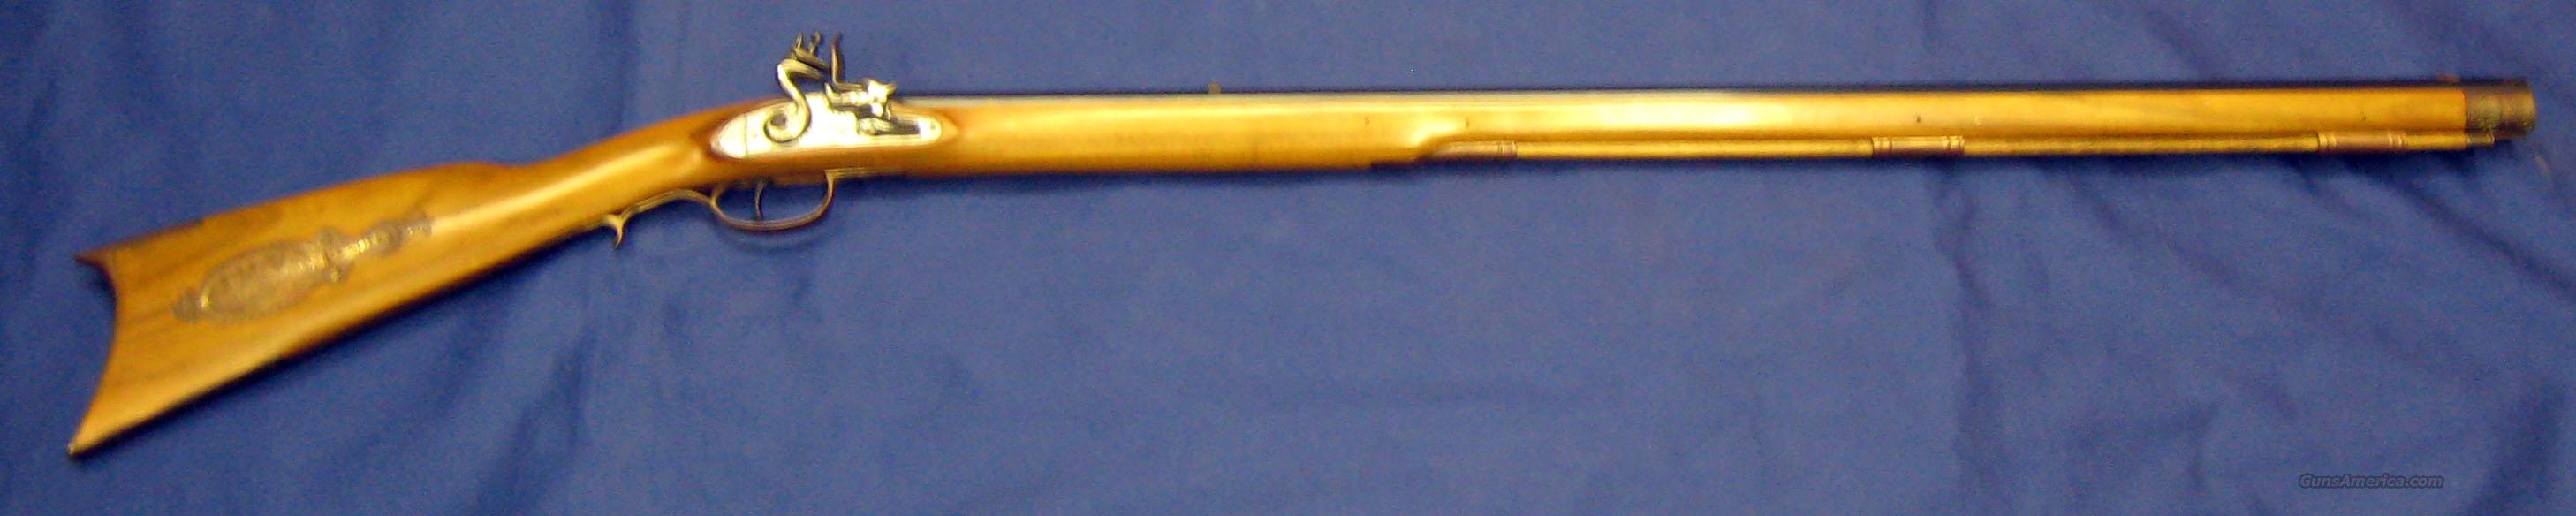 EuroArms Flintlock Kentucky Rifle .44Cal.  Guns > Rifles > E Misc Rifles